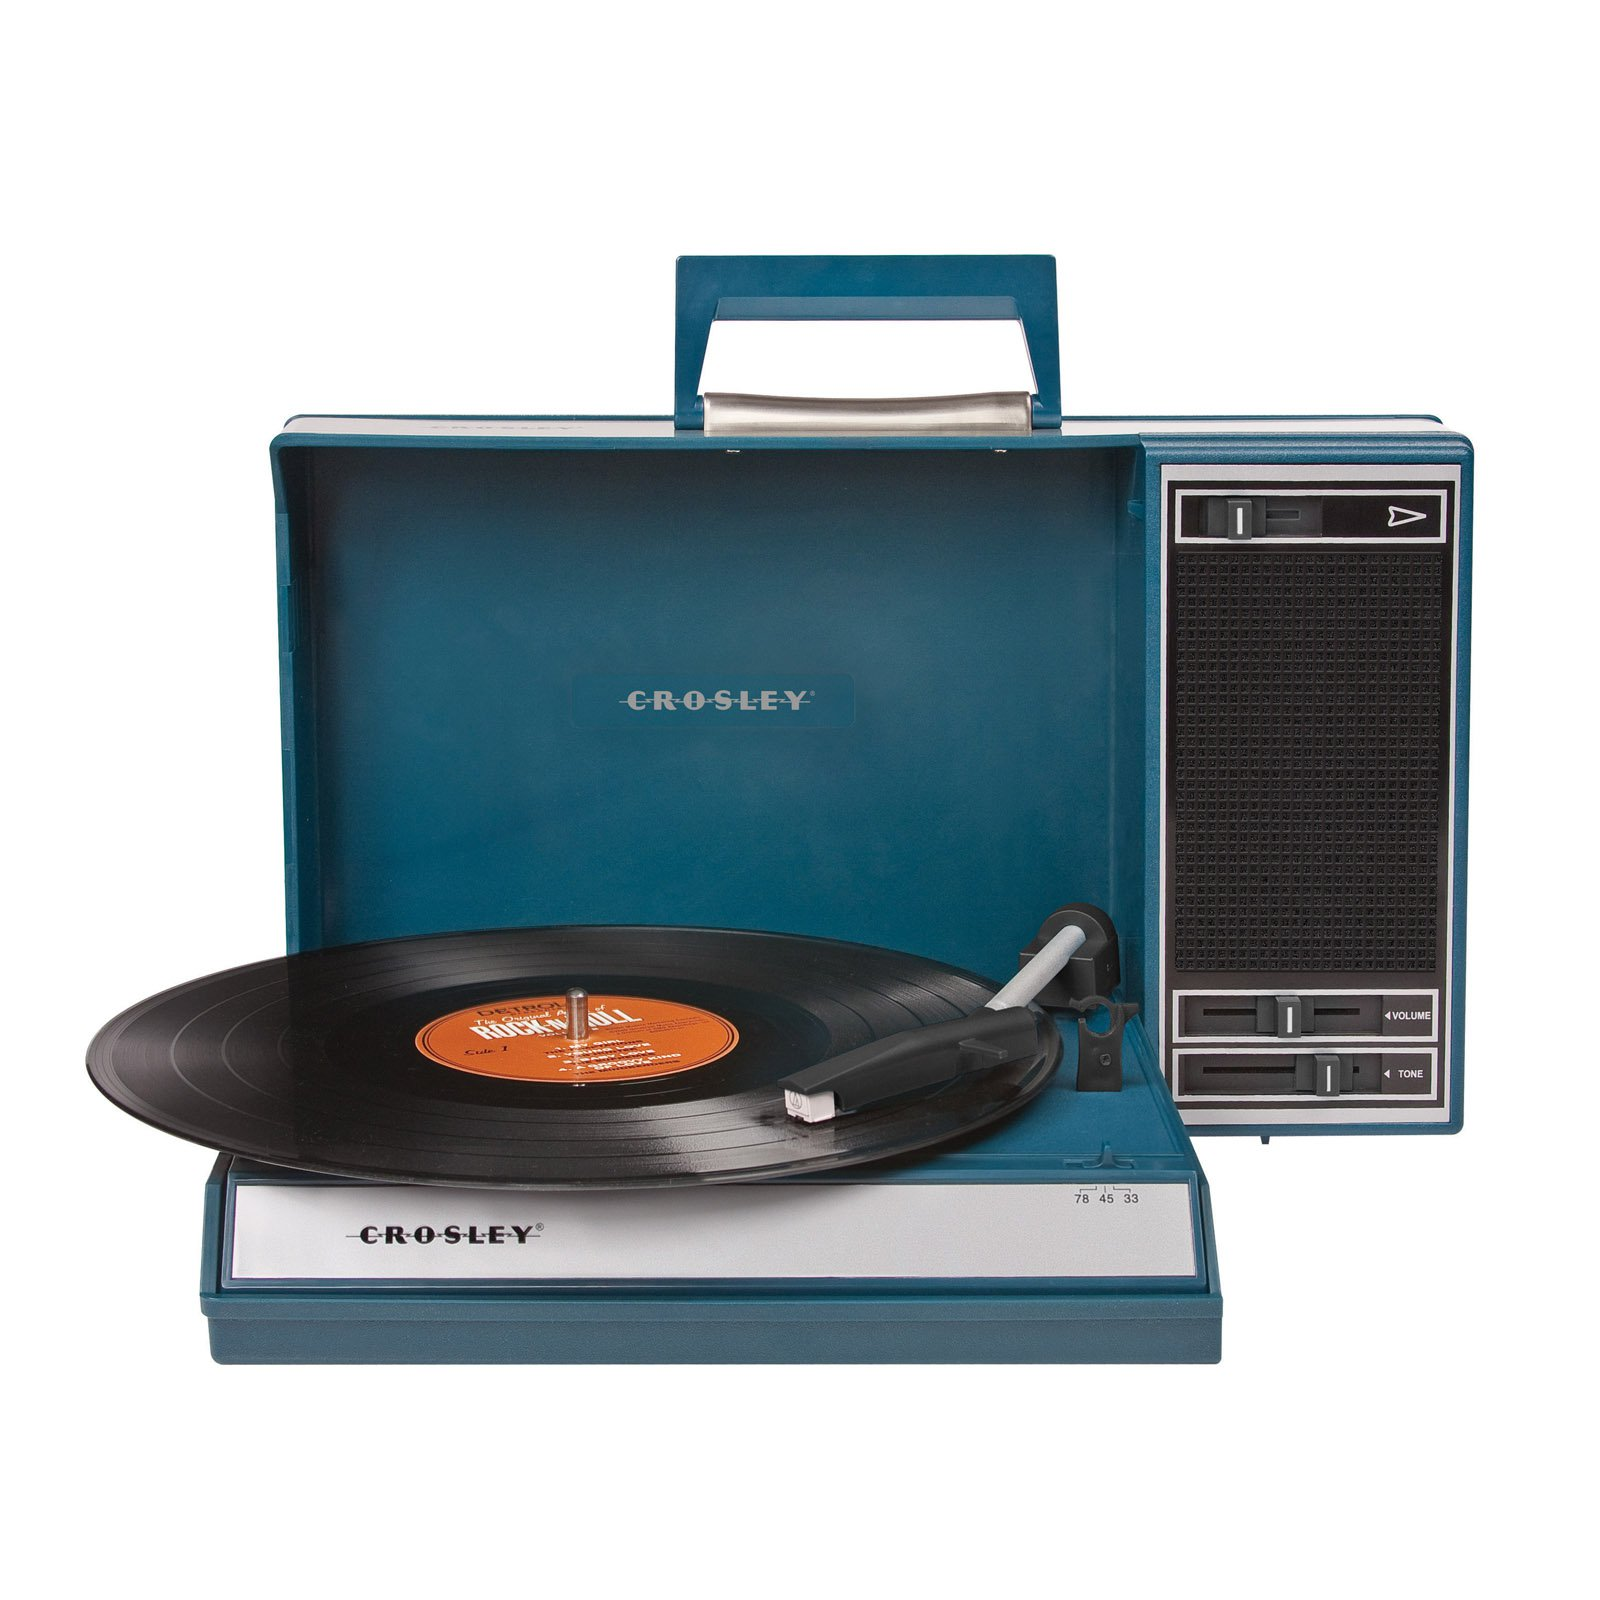 Crosley Portable USB Turntable by Crosley